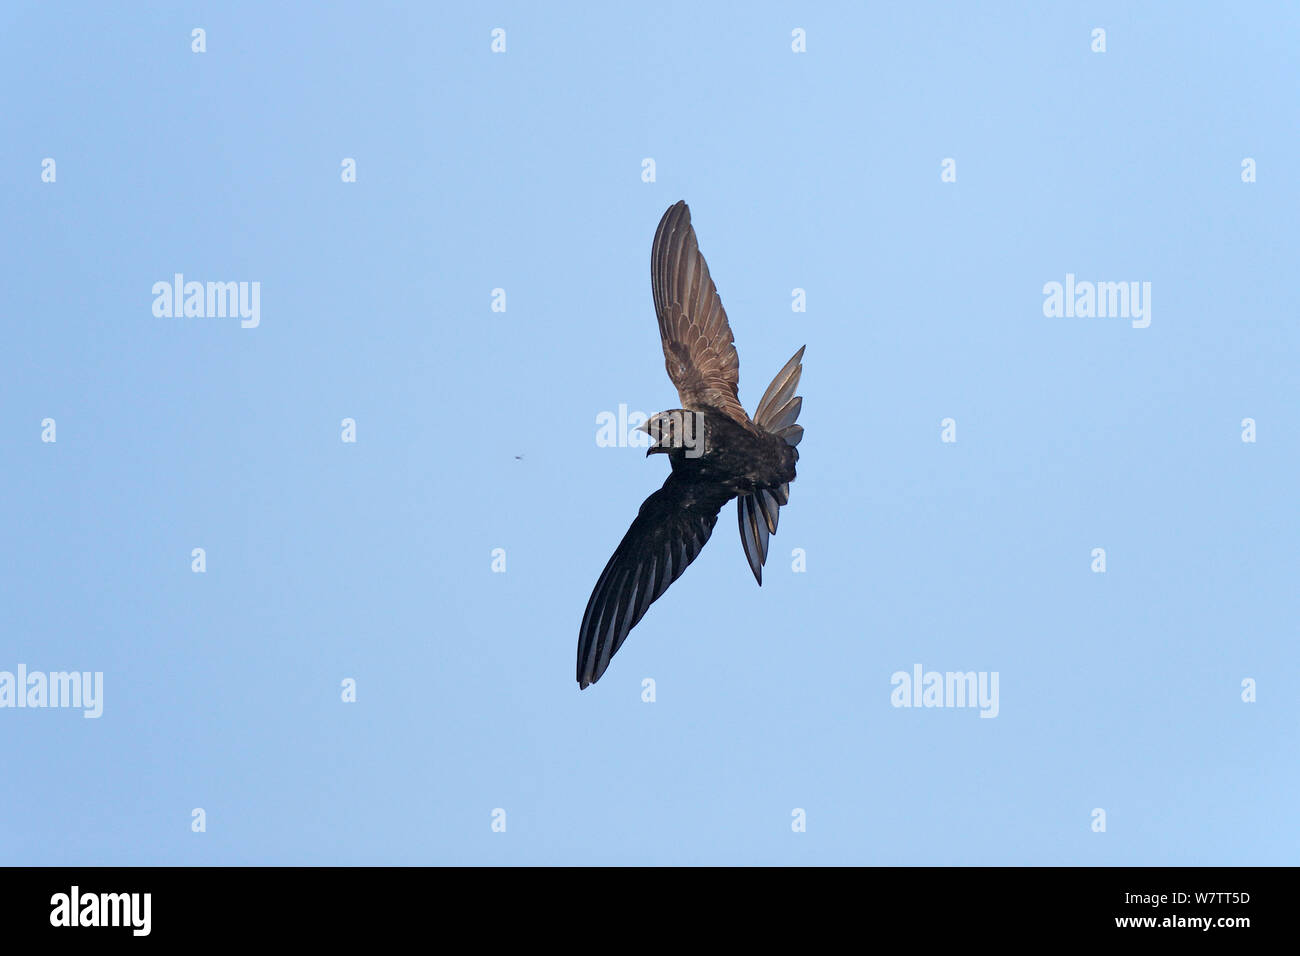 Common Swift (Apus apus) catching insect in flight, Wirral, Merseyside, UK, July. Stock Photo